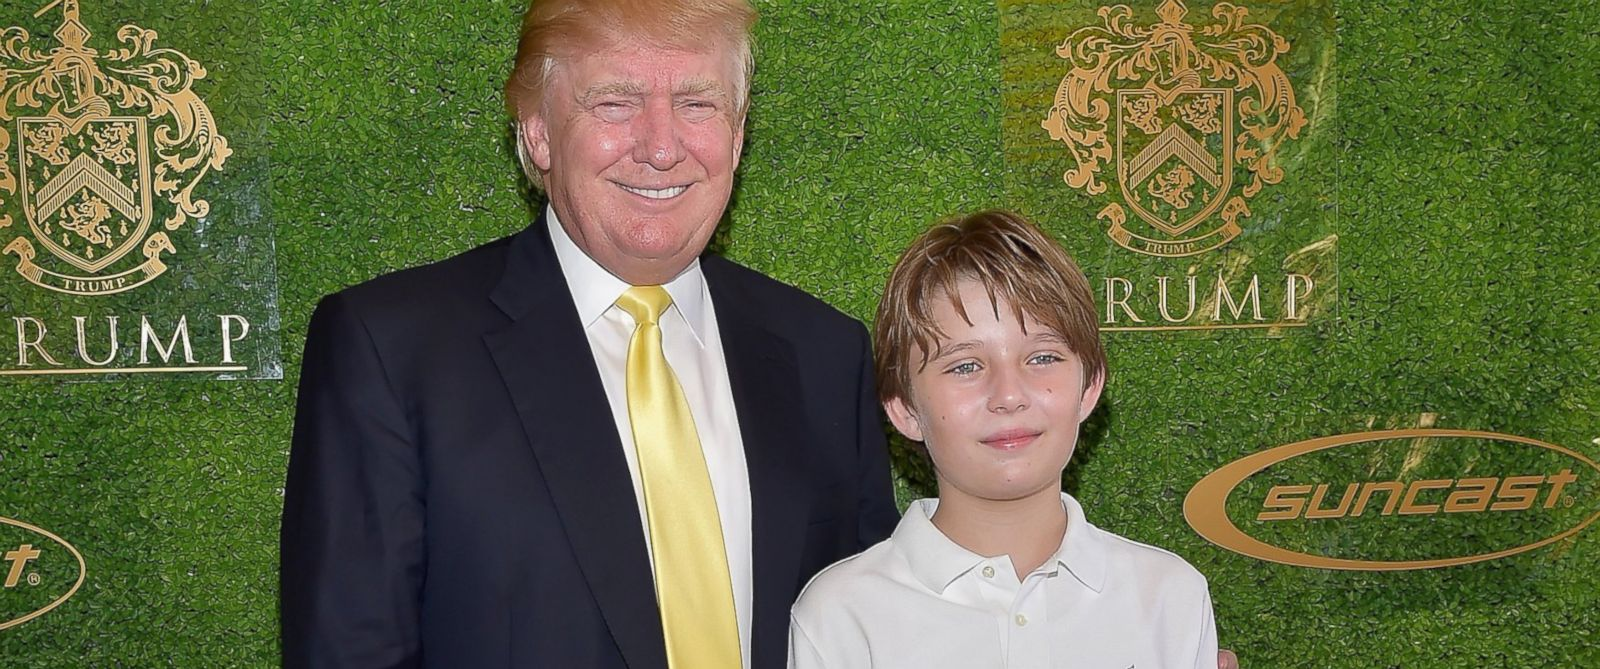 PHOTO:Donald Trump and Barron Trump attend Trump Invitational Grand Prix Mar-a-Lago Club at The Mar-a-Largo Club, Jan. 4, 2015, in Palm Beach, Fla.